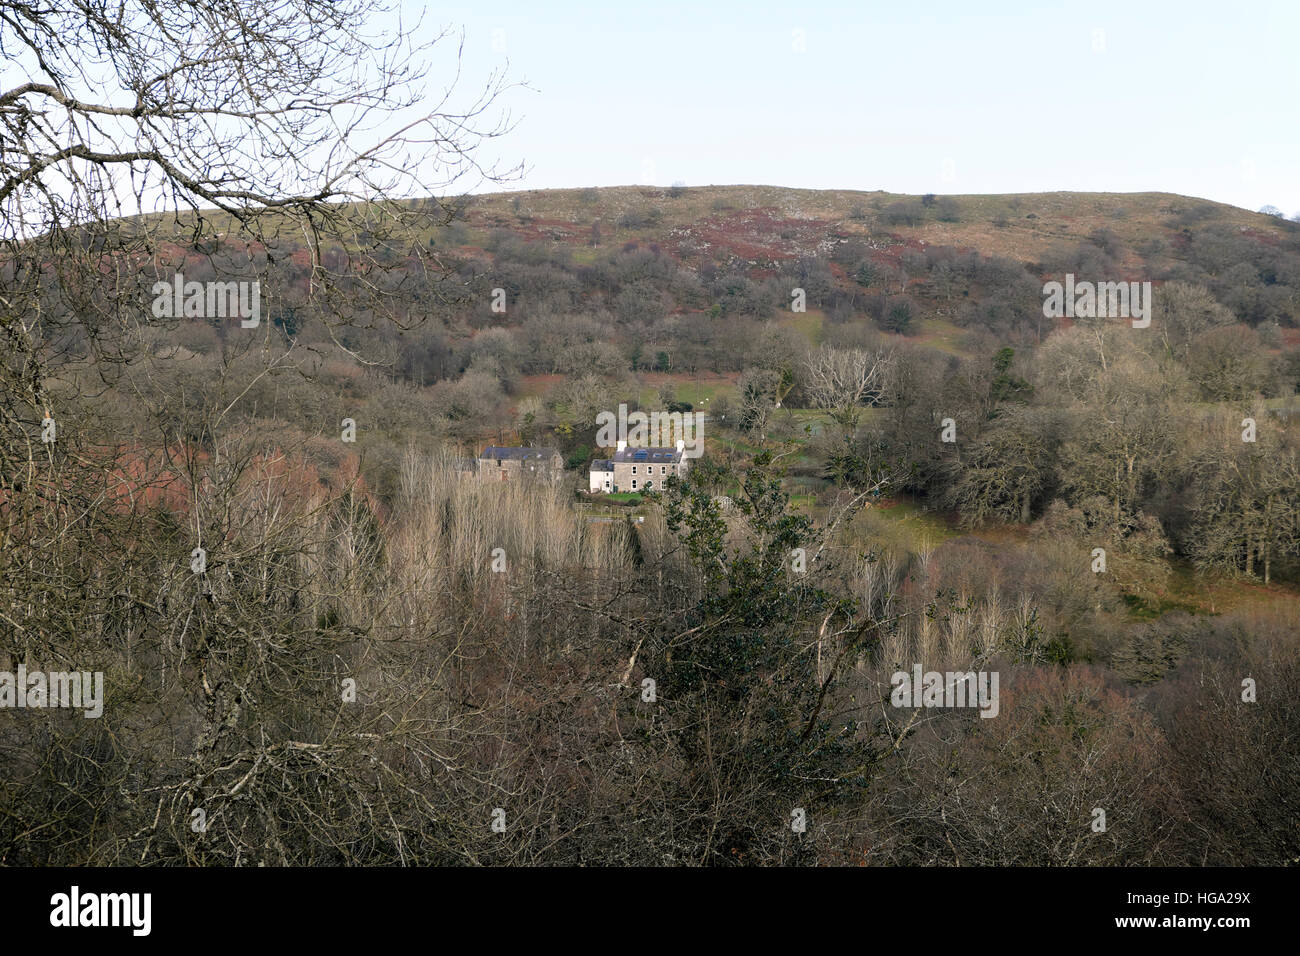 Rural homes country houses wooded landscape in Carmarthenshire countryside winter 2016 in Wales, Great Britain UK - Stock Image